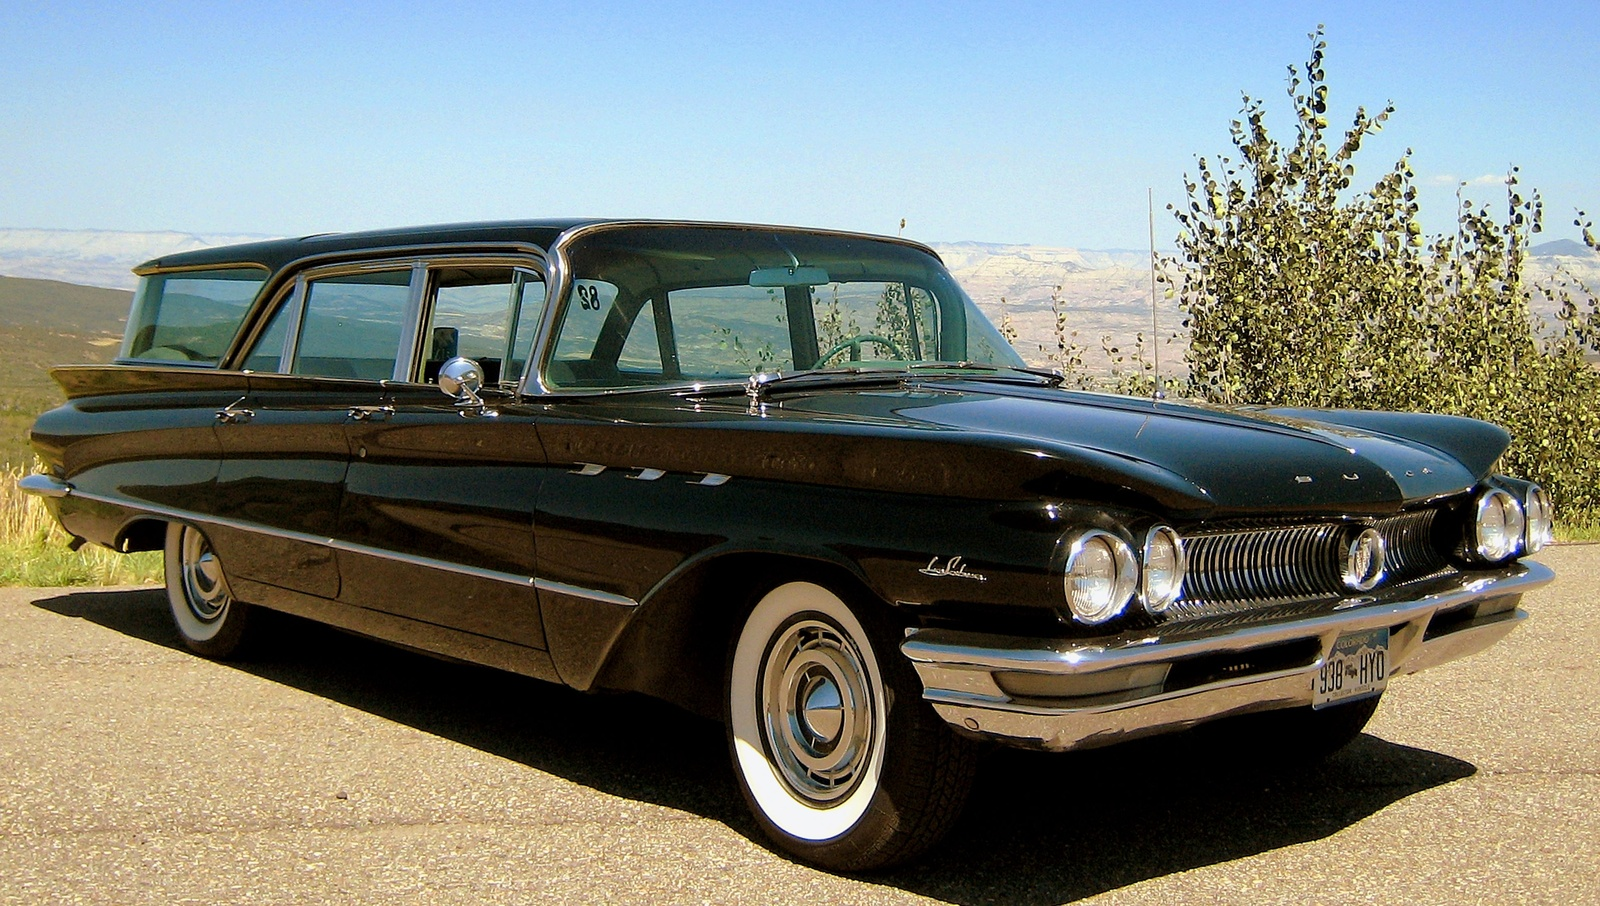 Swell Buick Lesabre 652Px Image 3 Wiring Cloud Uslyletkolfr09Org